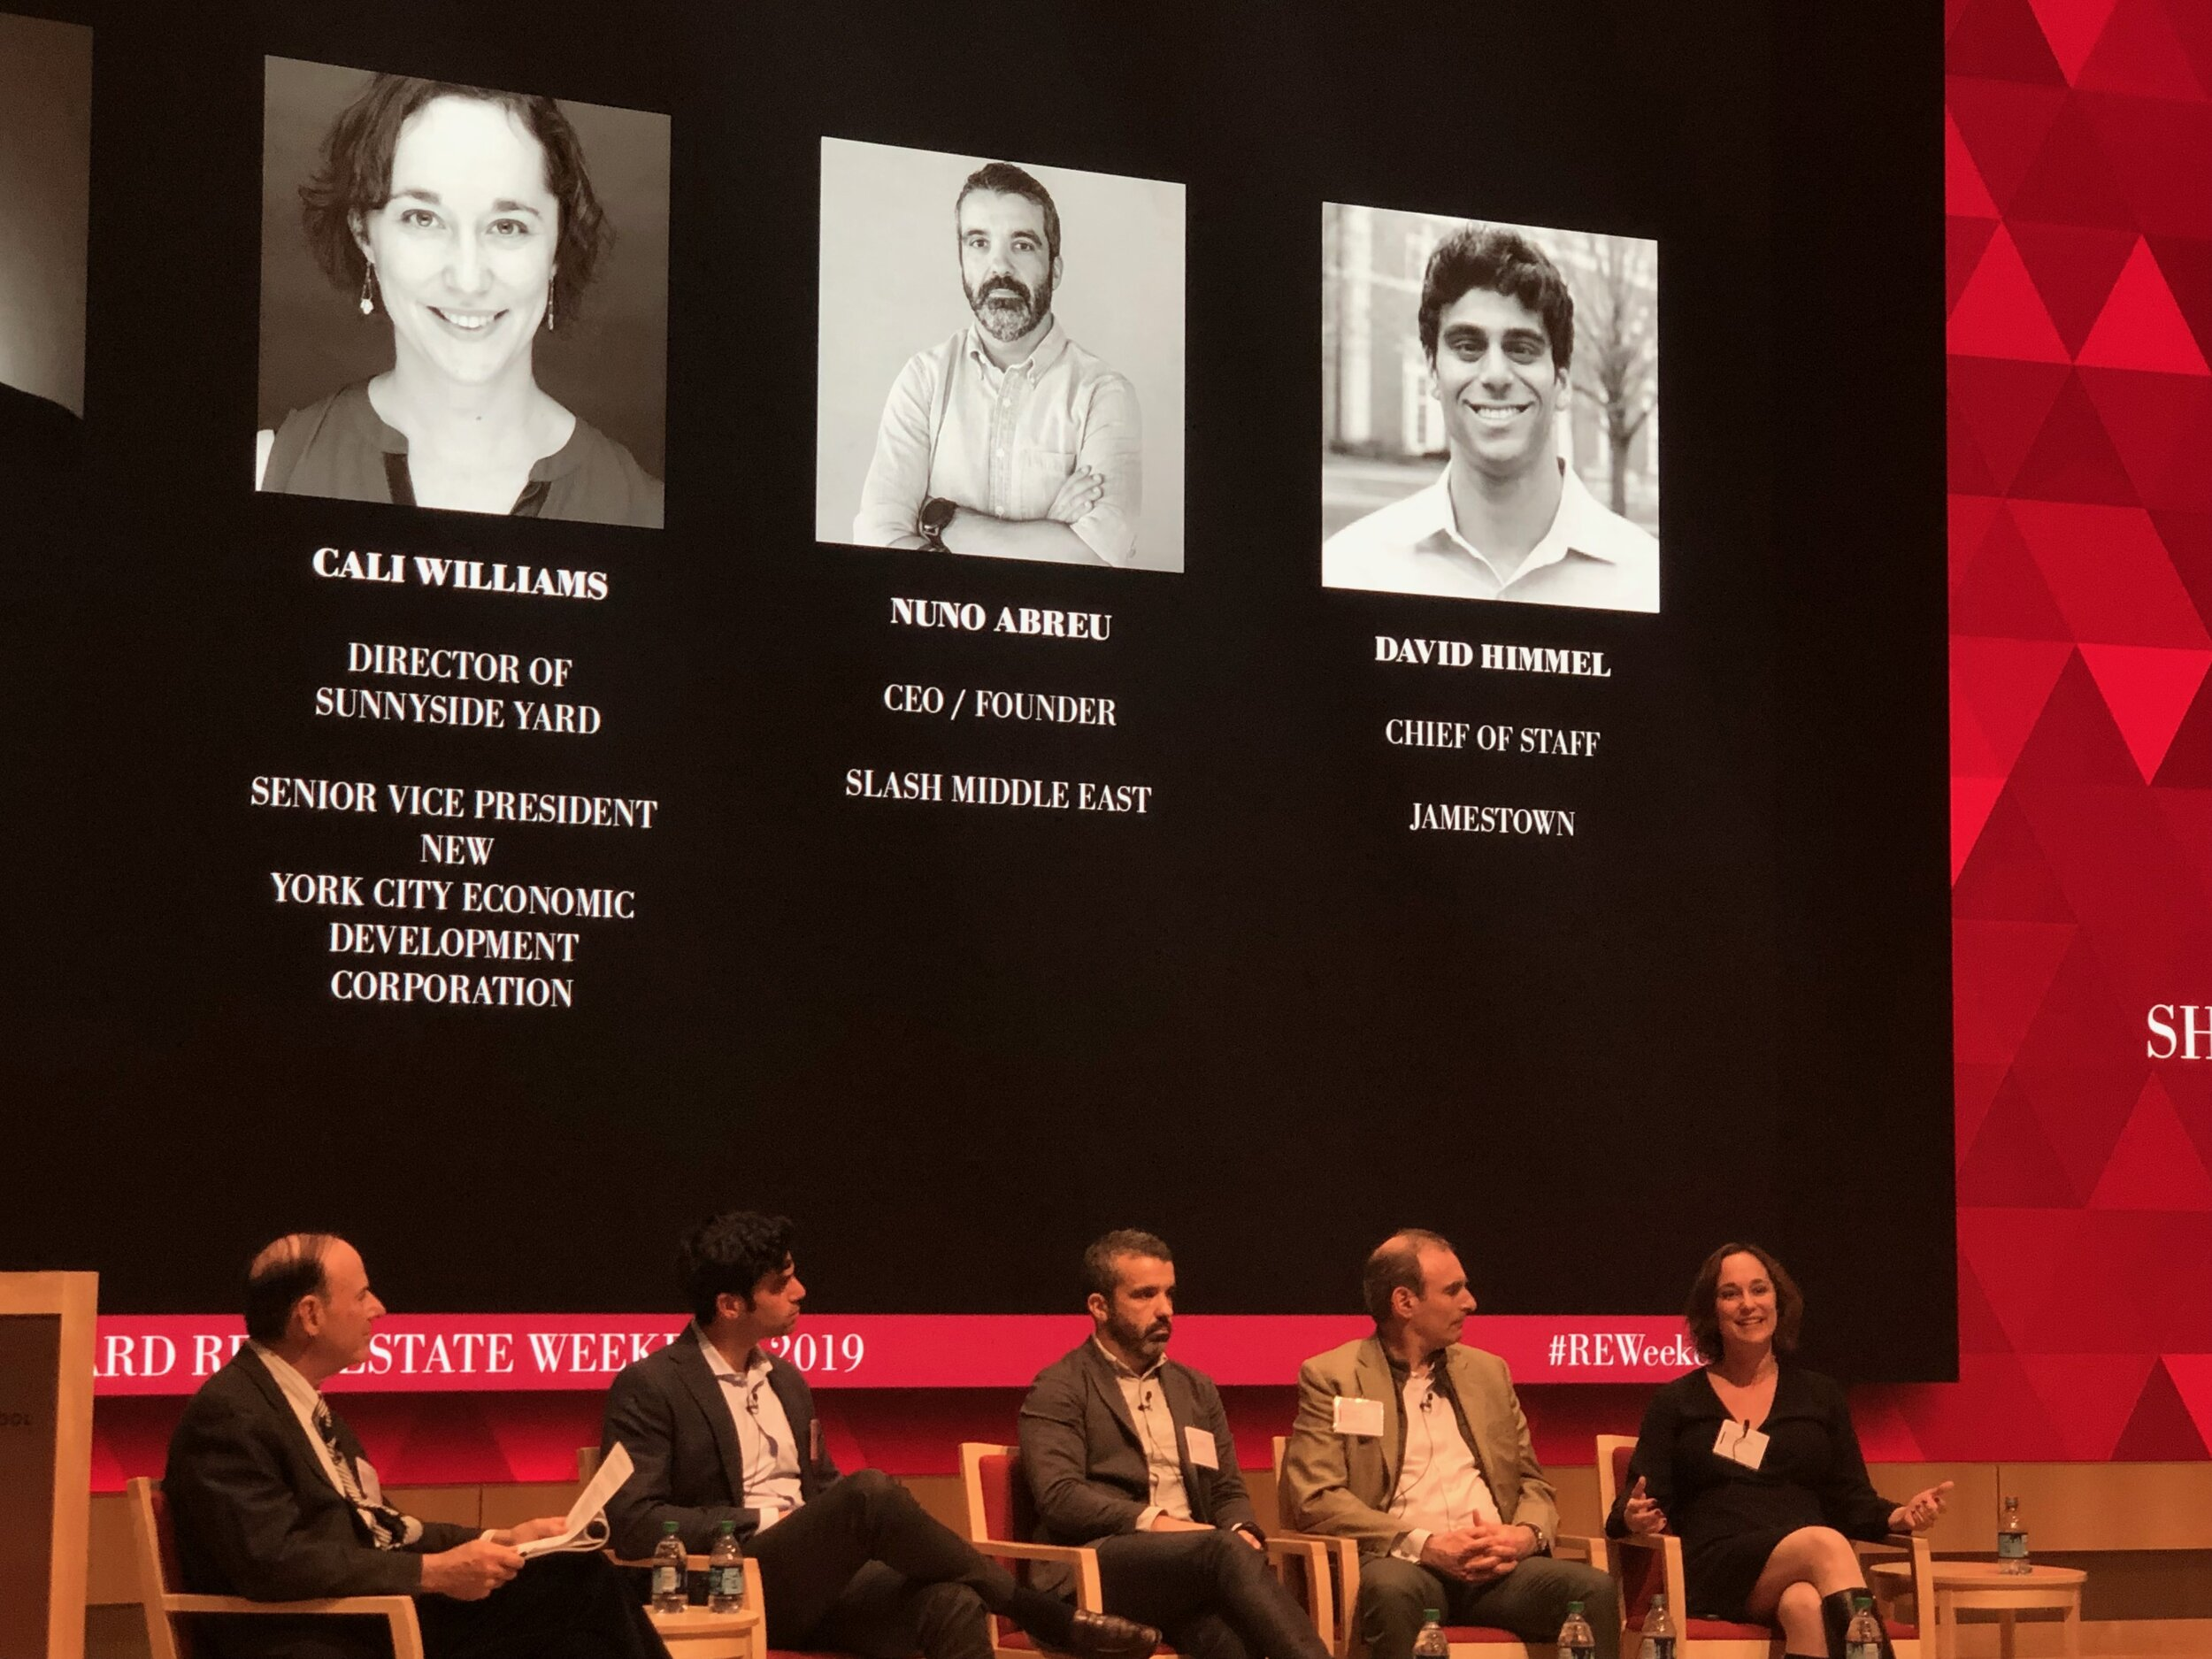 Cali Williams at the Harvard Real Estate Conference.